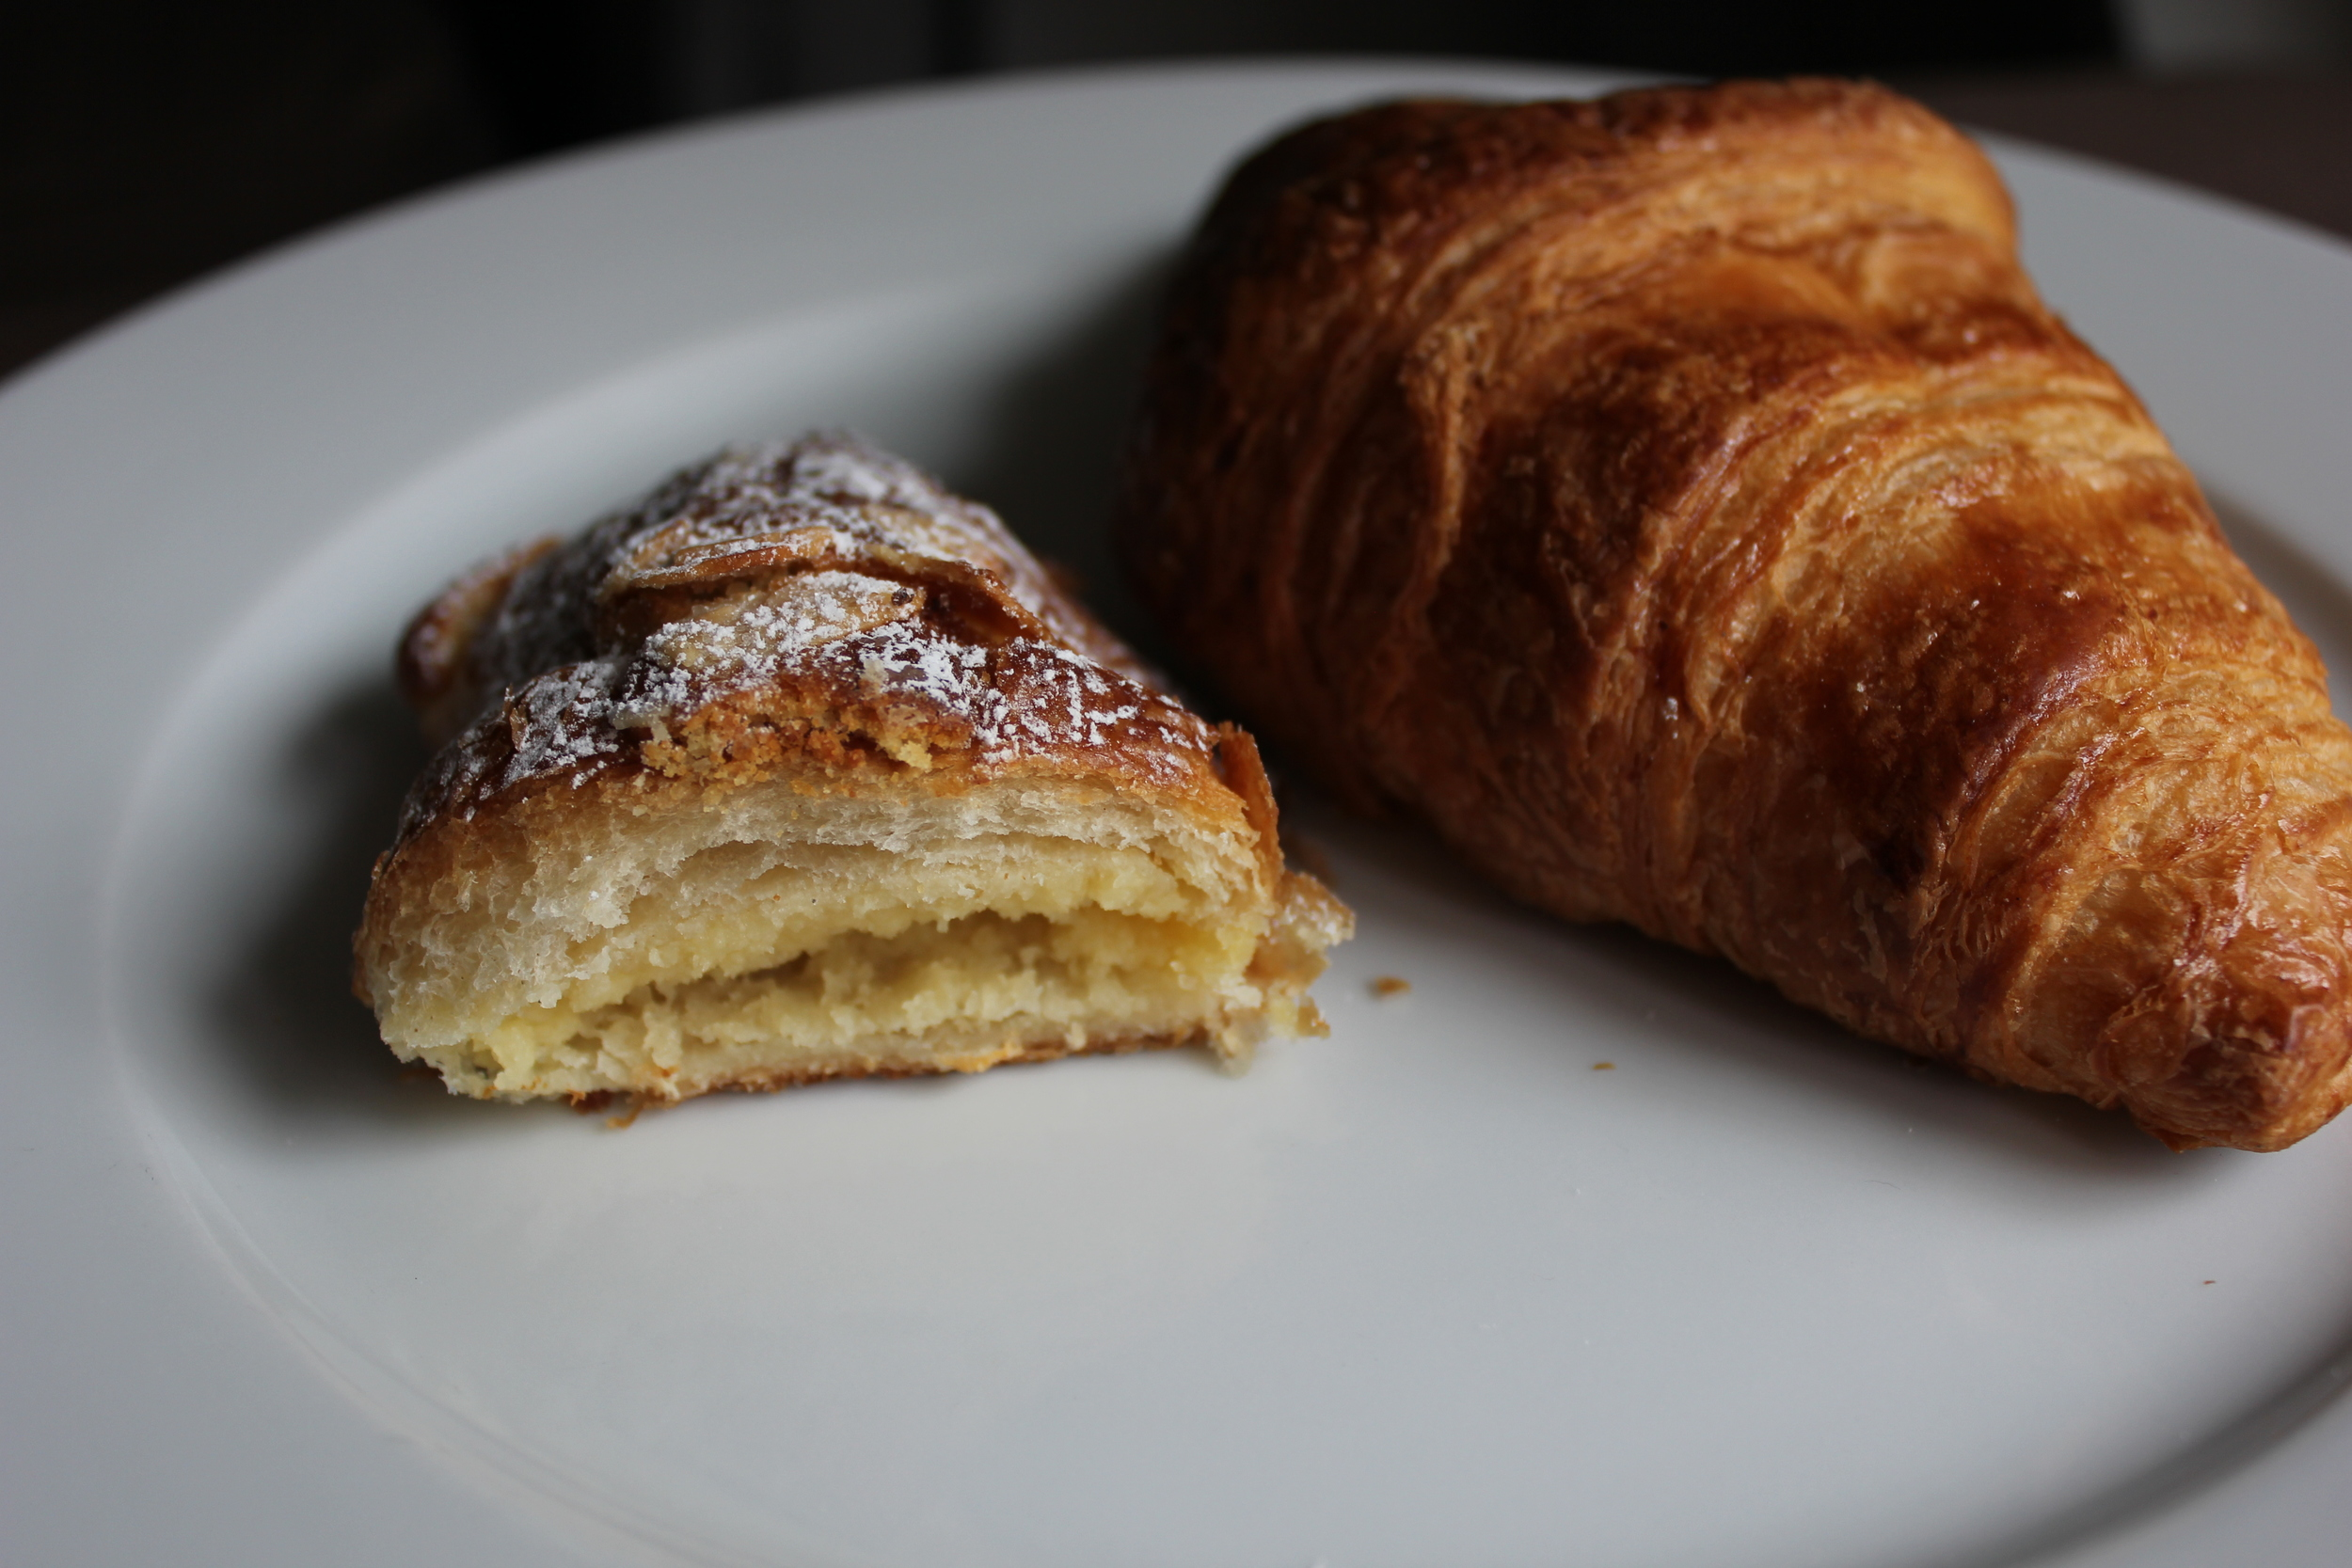 Grandma Marion's Almond Cake tastes like the inside of an almond croissant - www.fancycasual.com